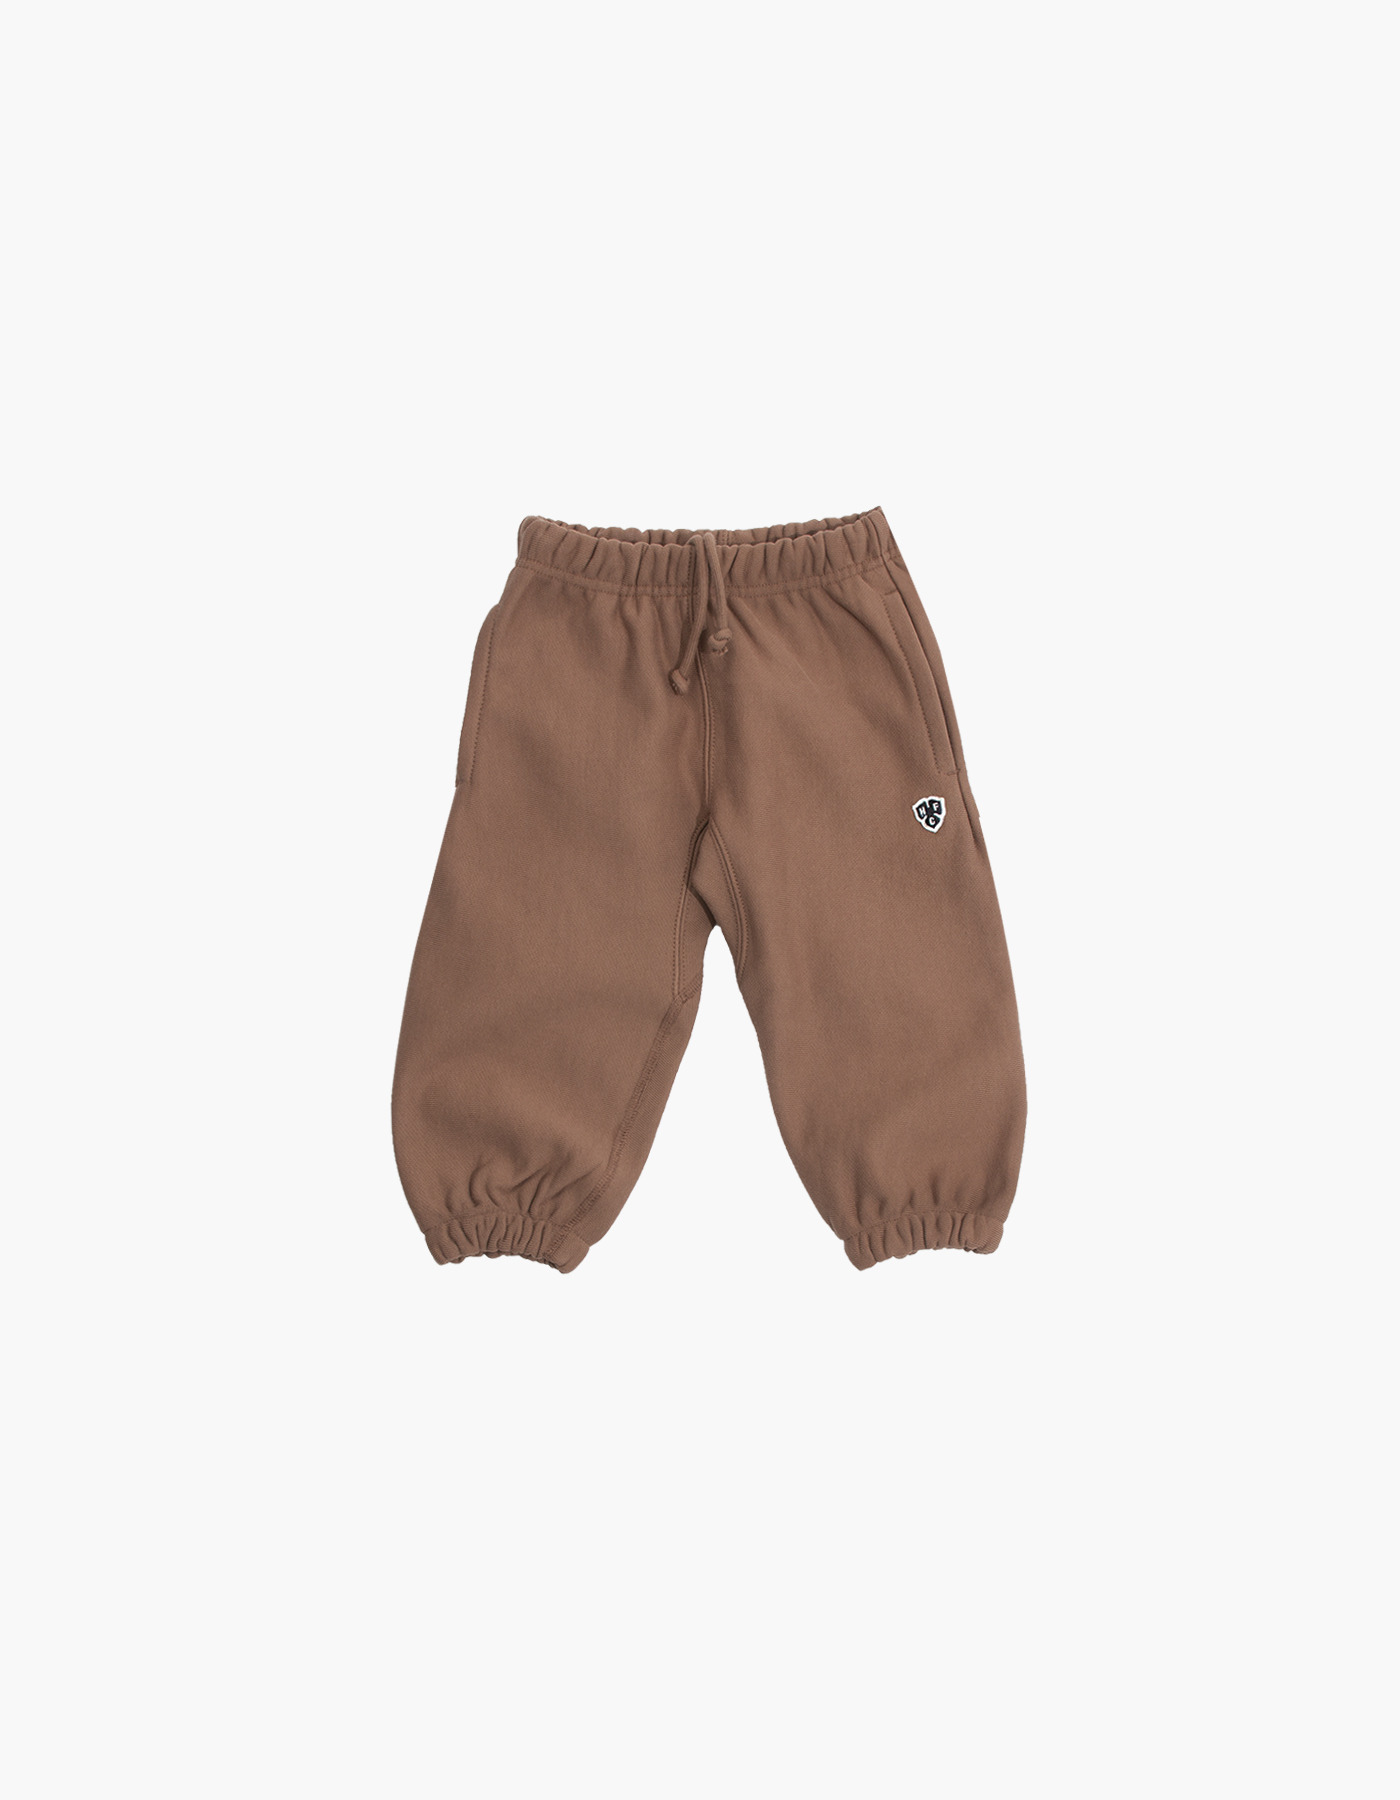 231 KIDS HFC SWEATPANTS / BROWN